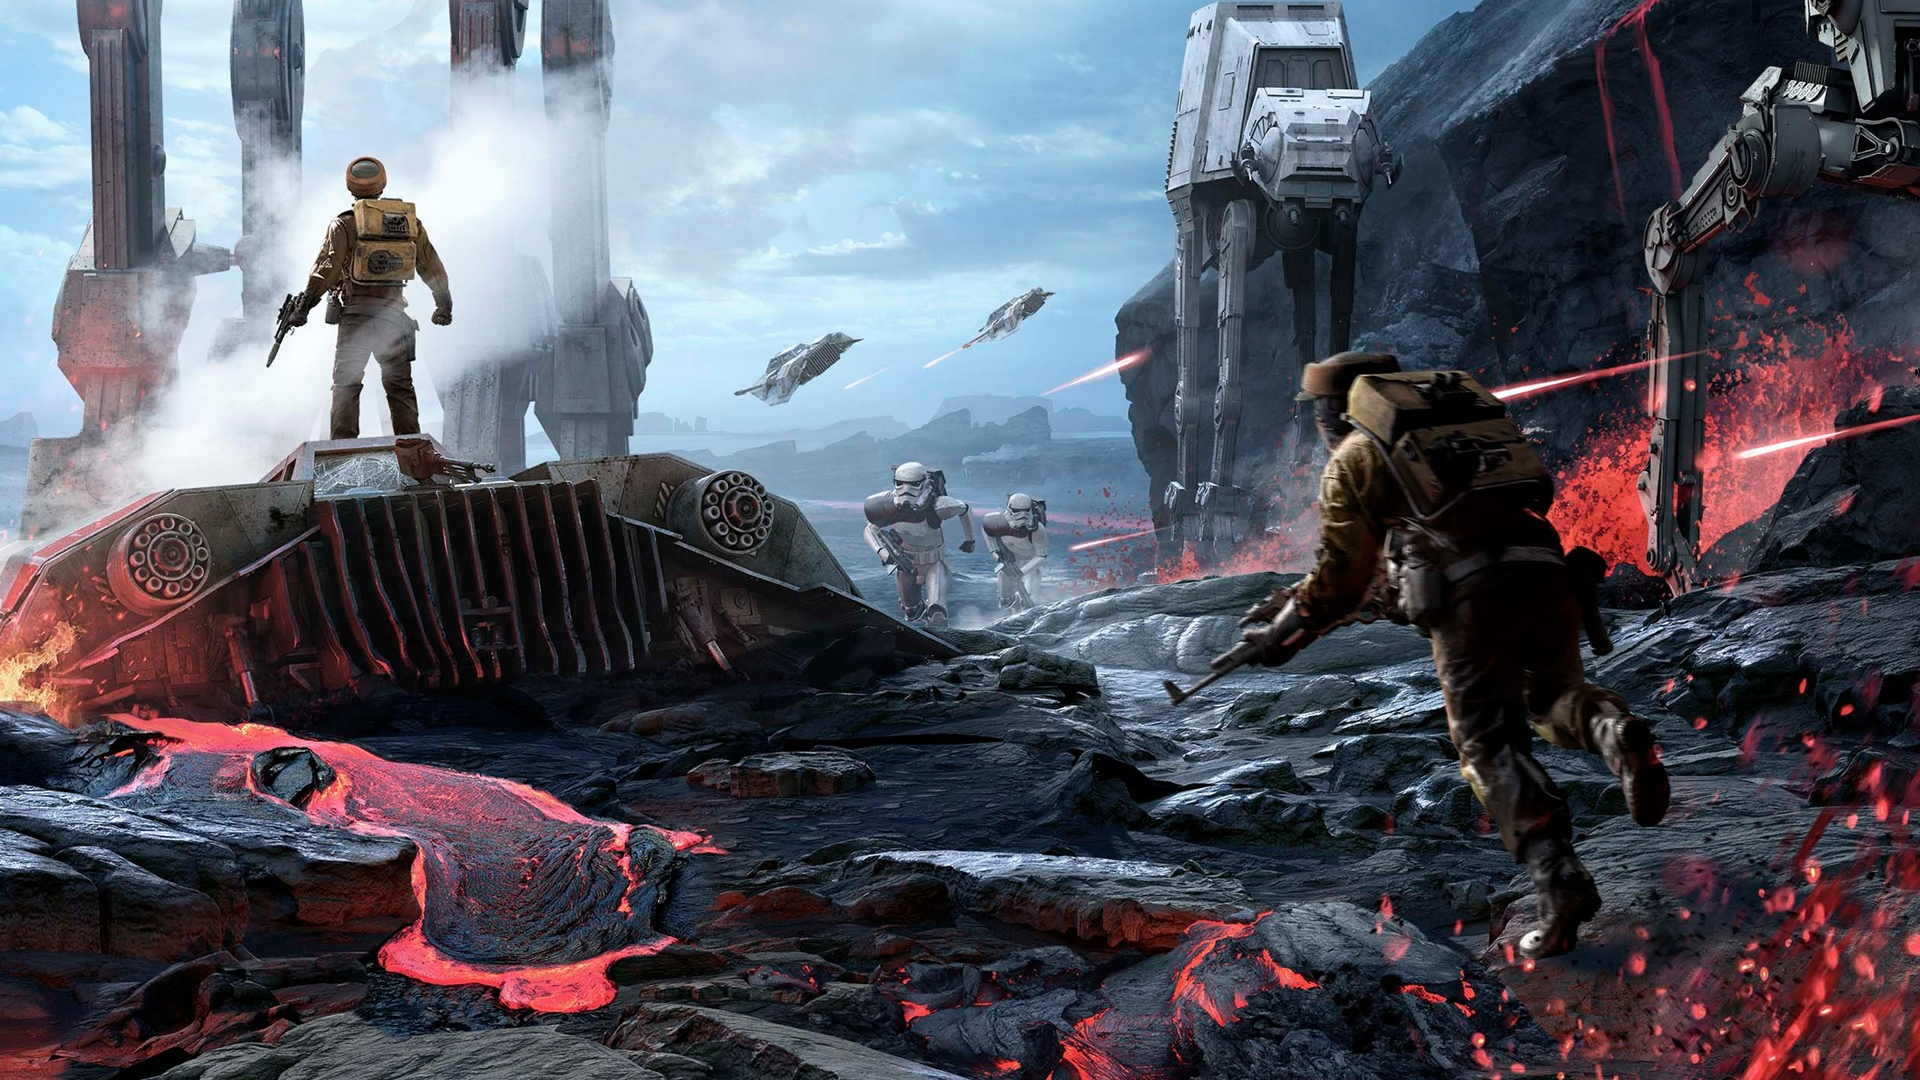 star wars - battlefront wallpaper strikes image - dark force